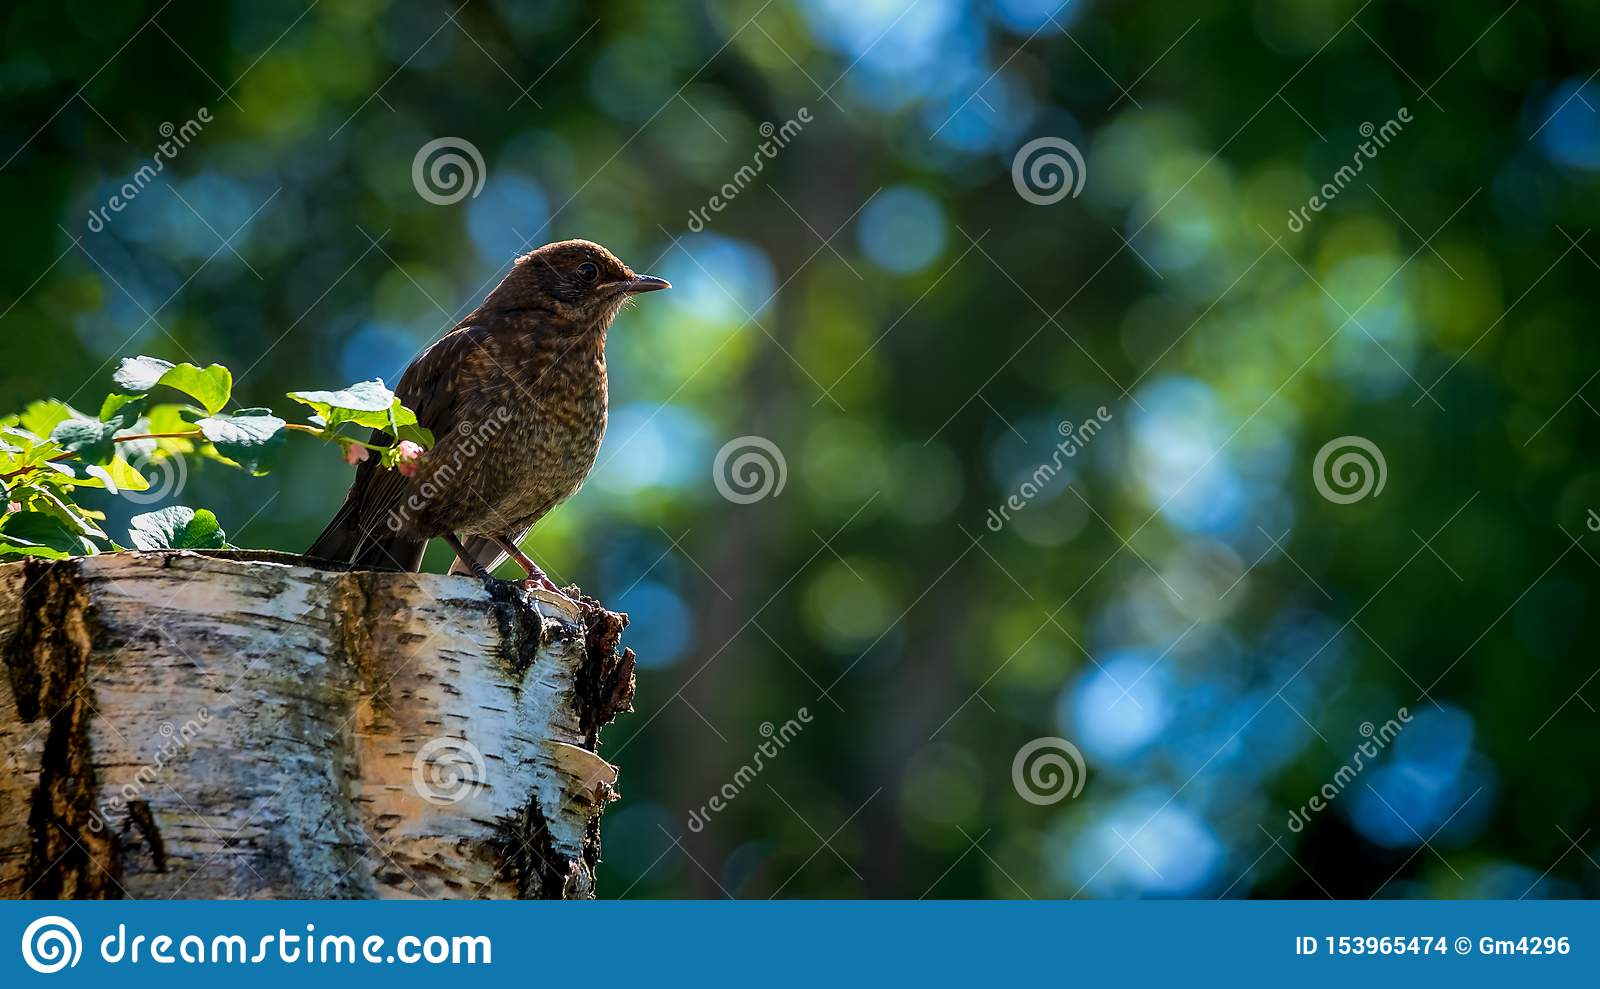 Blackbird fledgling perched on a the stump of a tree